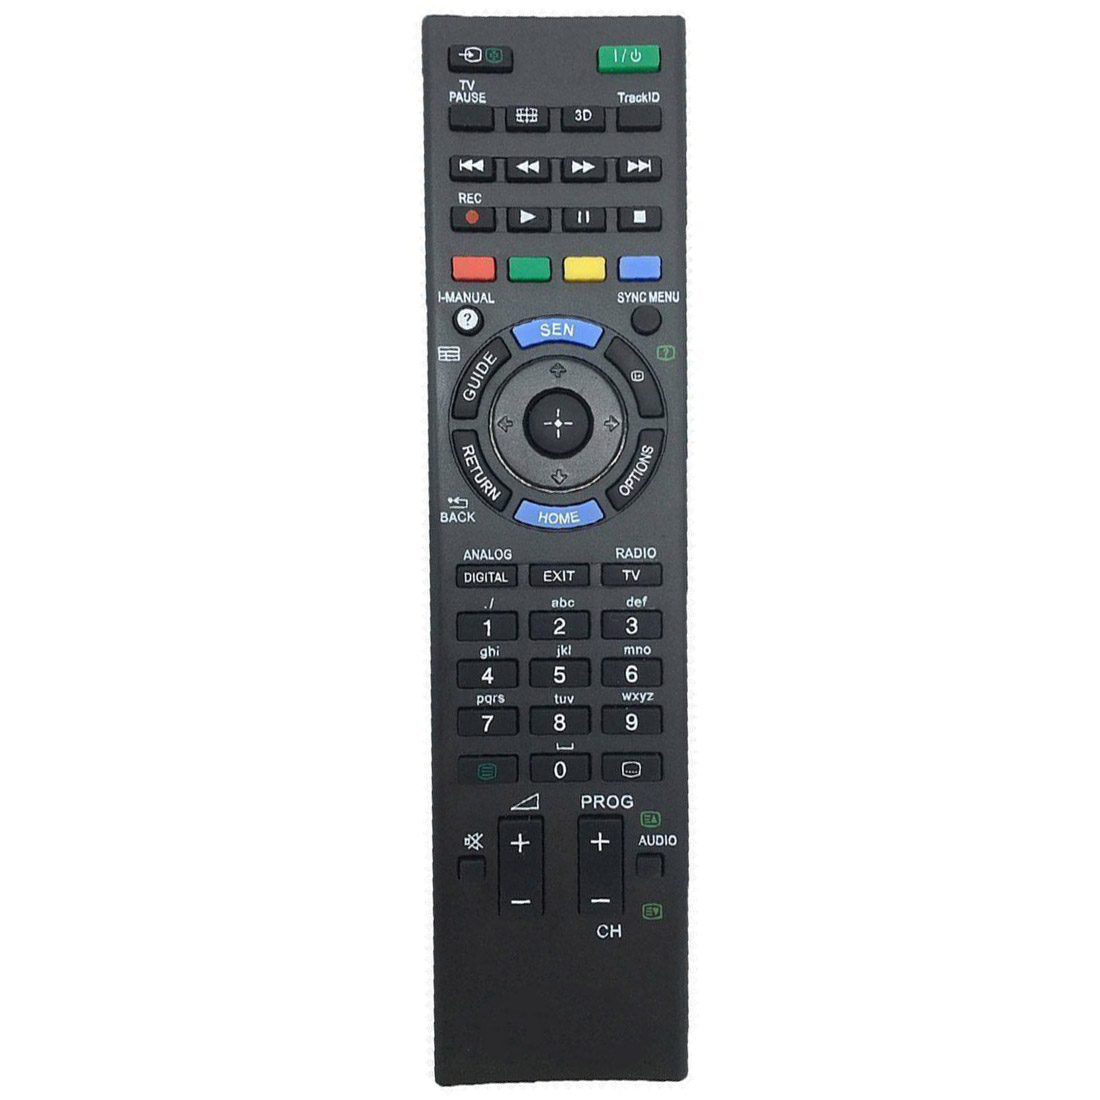 New Remote Control RM-ED047 For SONY Bravia TV KDL-40HX750 KDL-46HX850 remote control suitable for sony rm gd005 kdl 32ex402 rm ed022 rm ed036 lcd tv